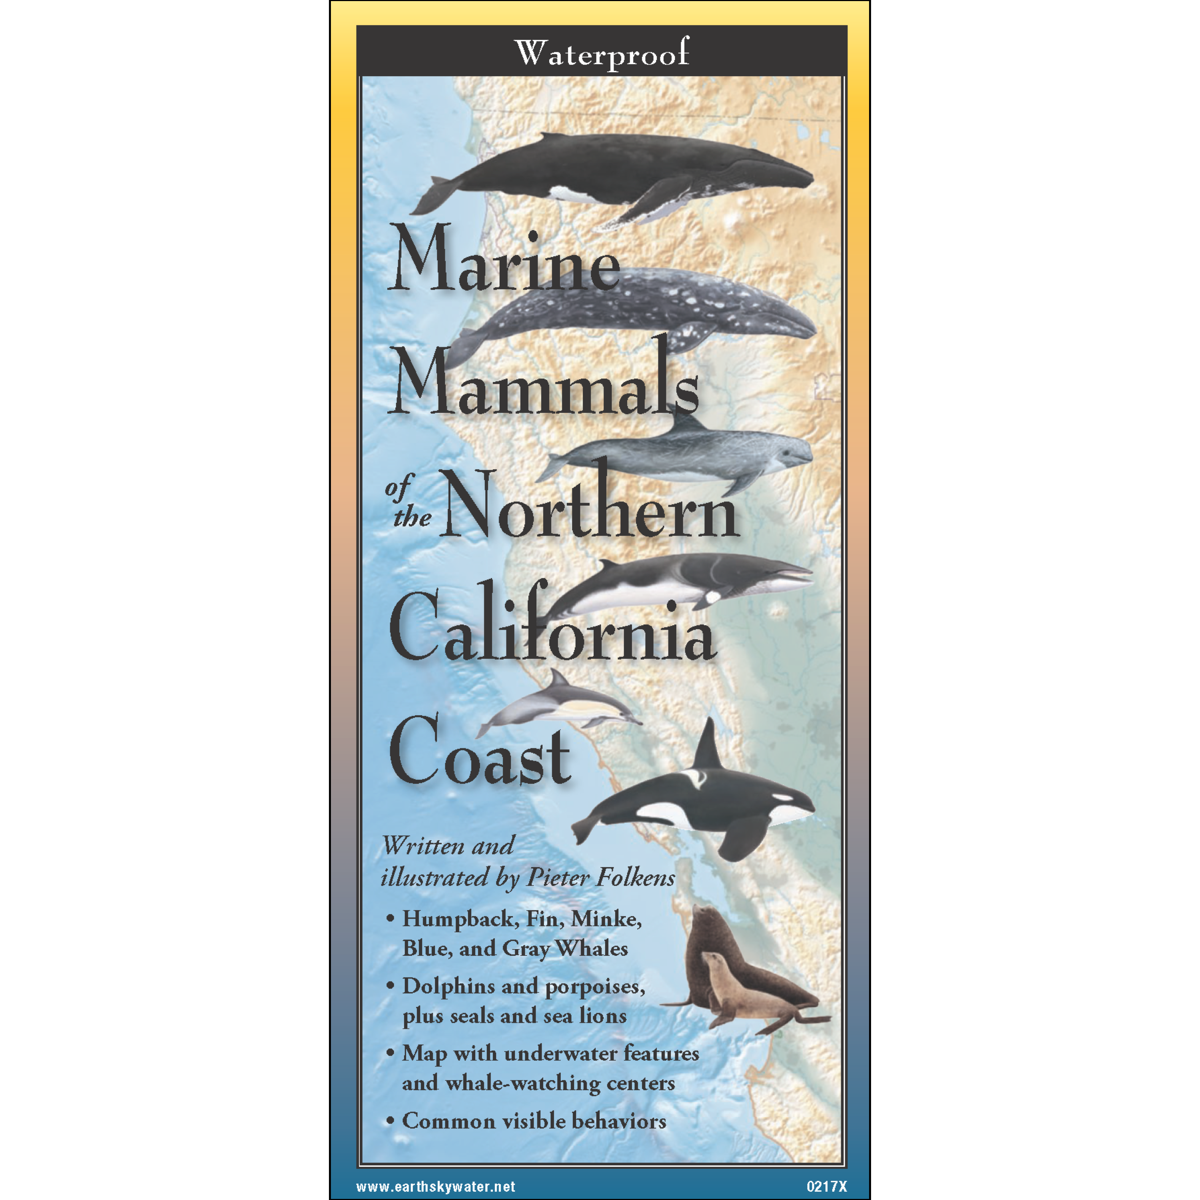 Marine Mammals of the Northern California Coast on map of vaquita, map of northeastern caribbean, map of orcas, map of england, map of wild horses, map of rhinoceros, map of starfish, map of shrimp, map of uk, map of chimps, map of lobsters, map of swans, map of slot canyons, map of wales with towns and cities, map of scotland, map of shark finning, map of icebergs, map of wales united kingdom, map of octopus,